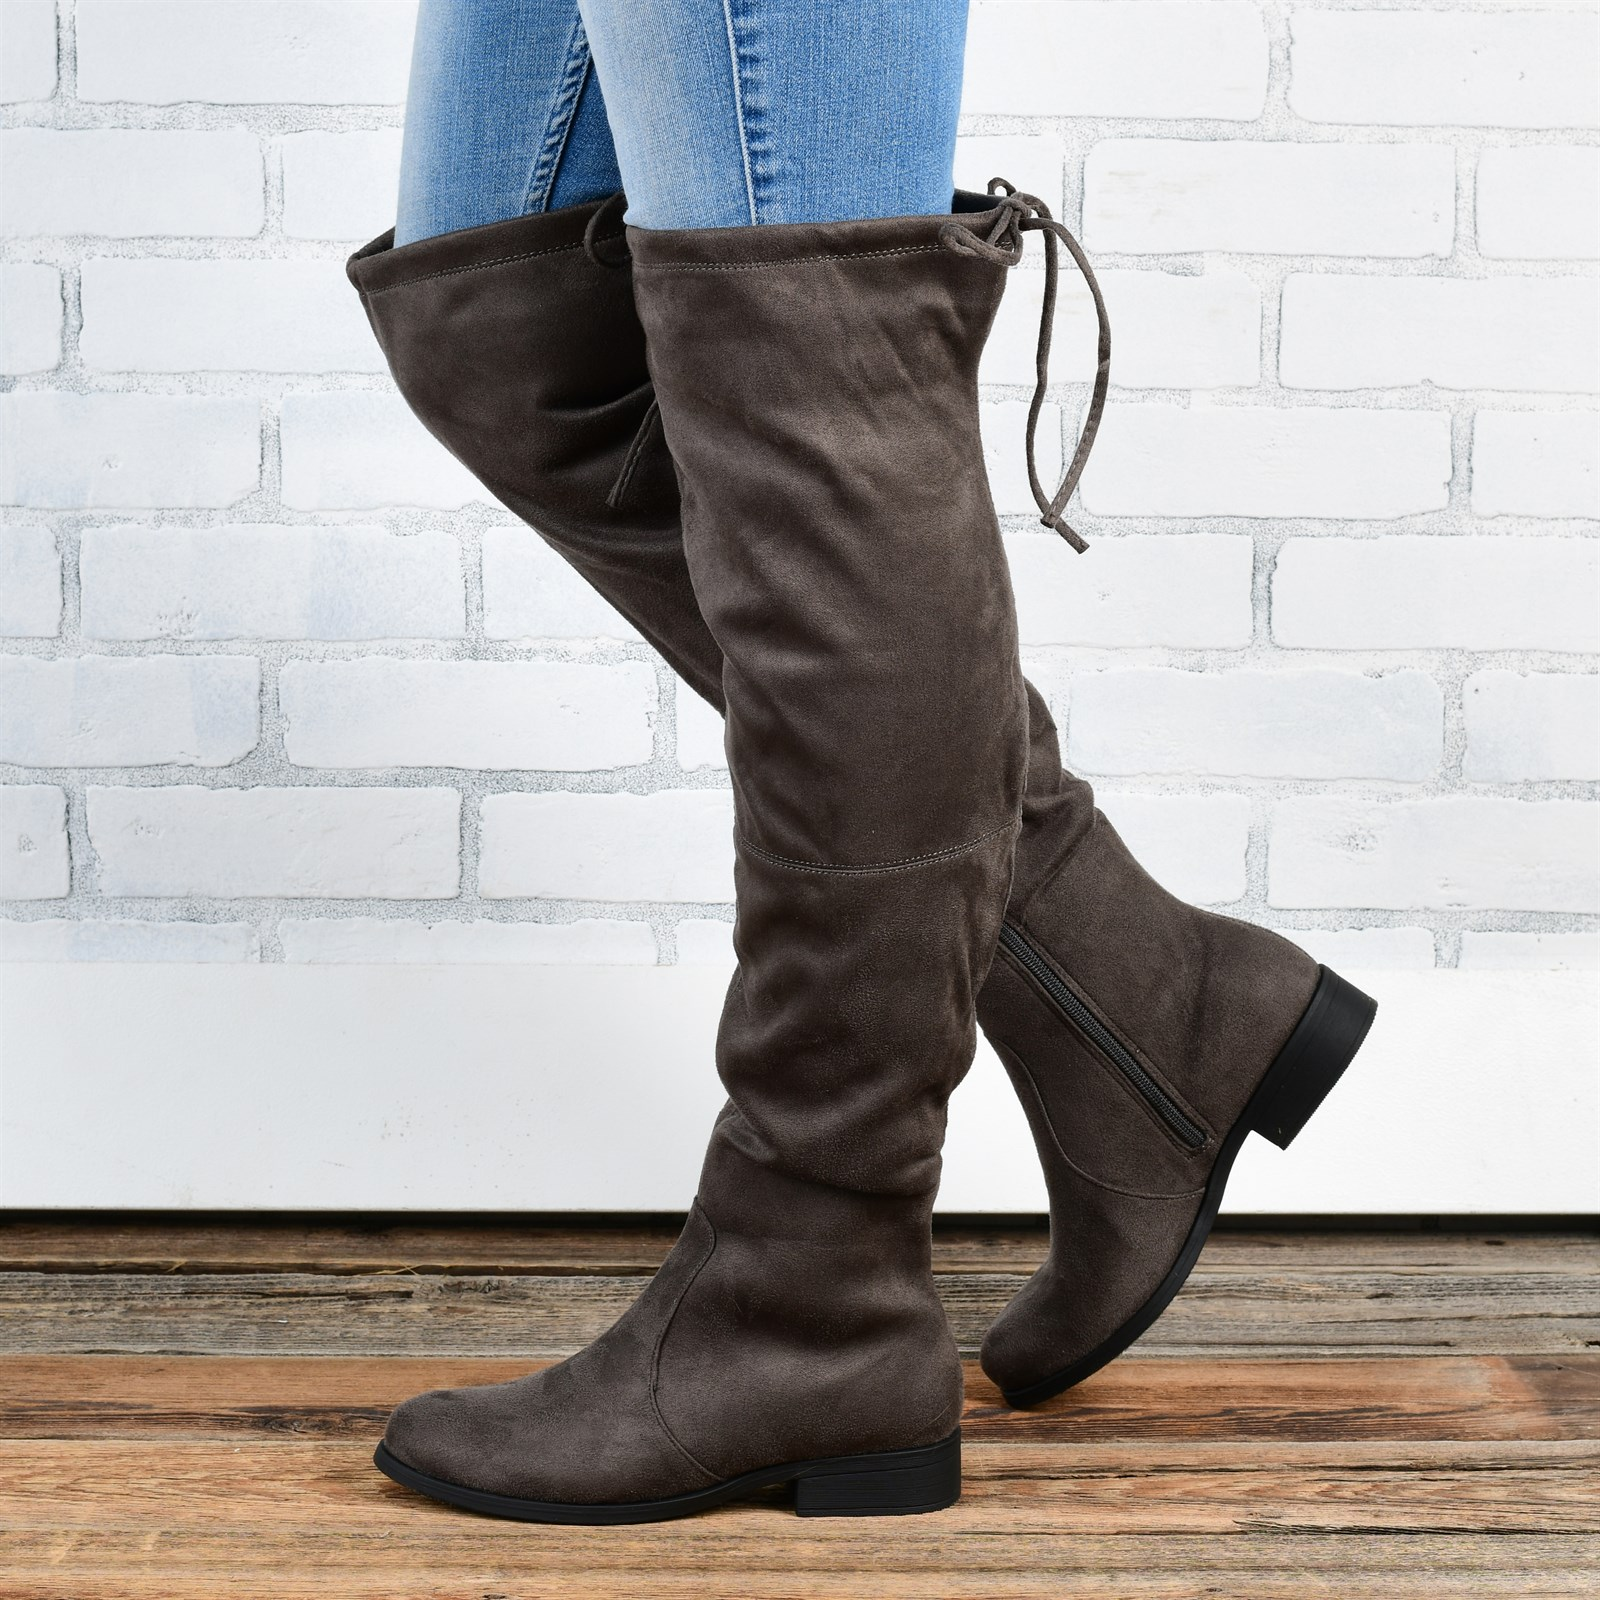 Classic Over-The-Knee Boots